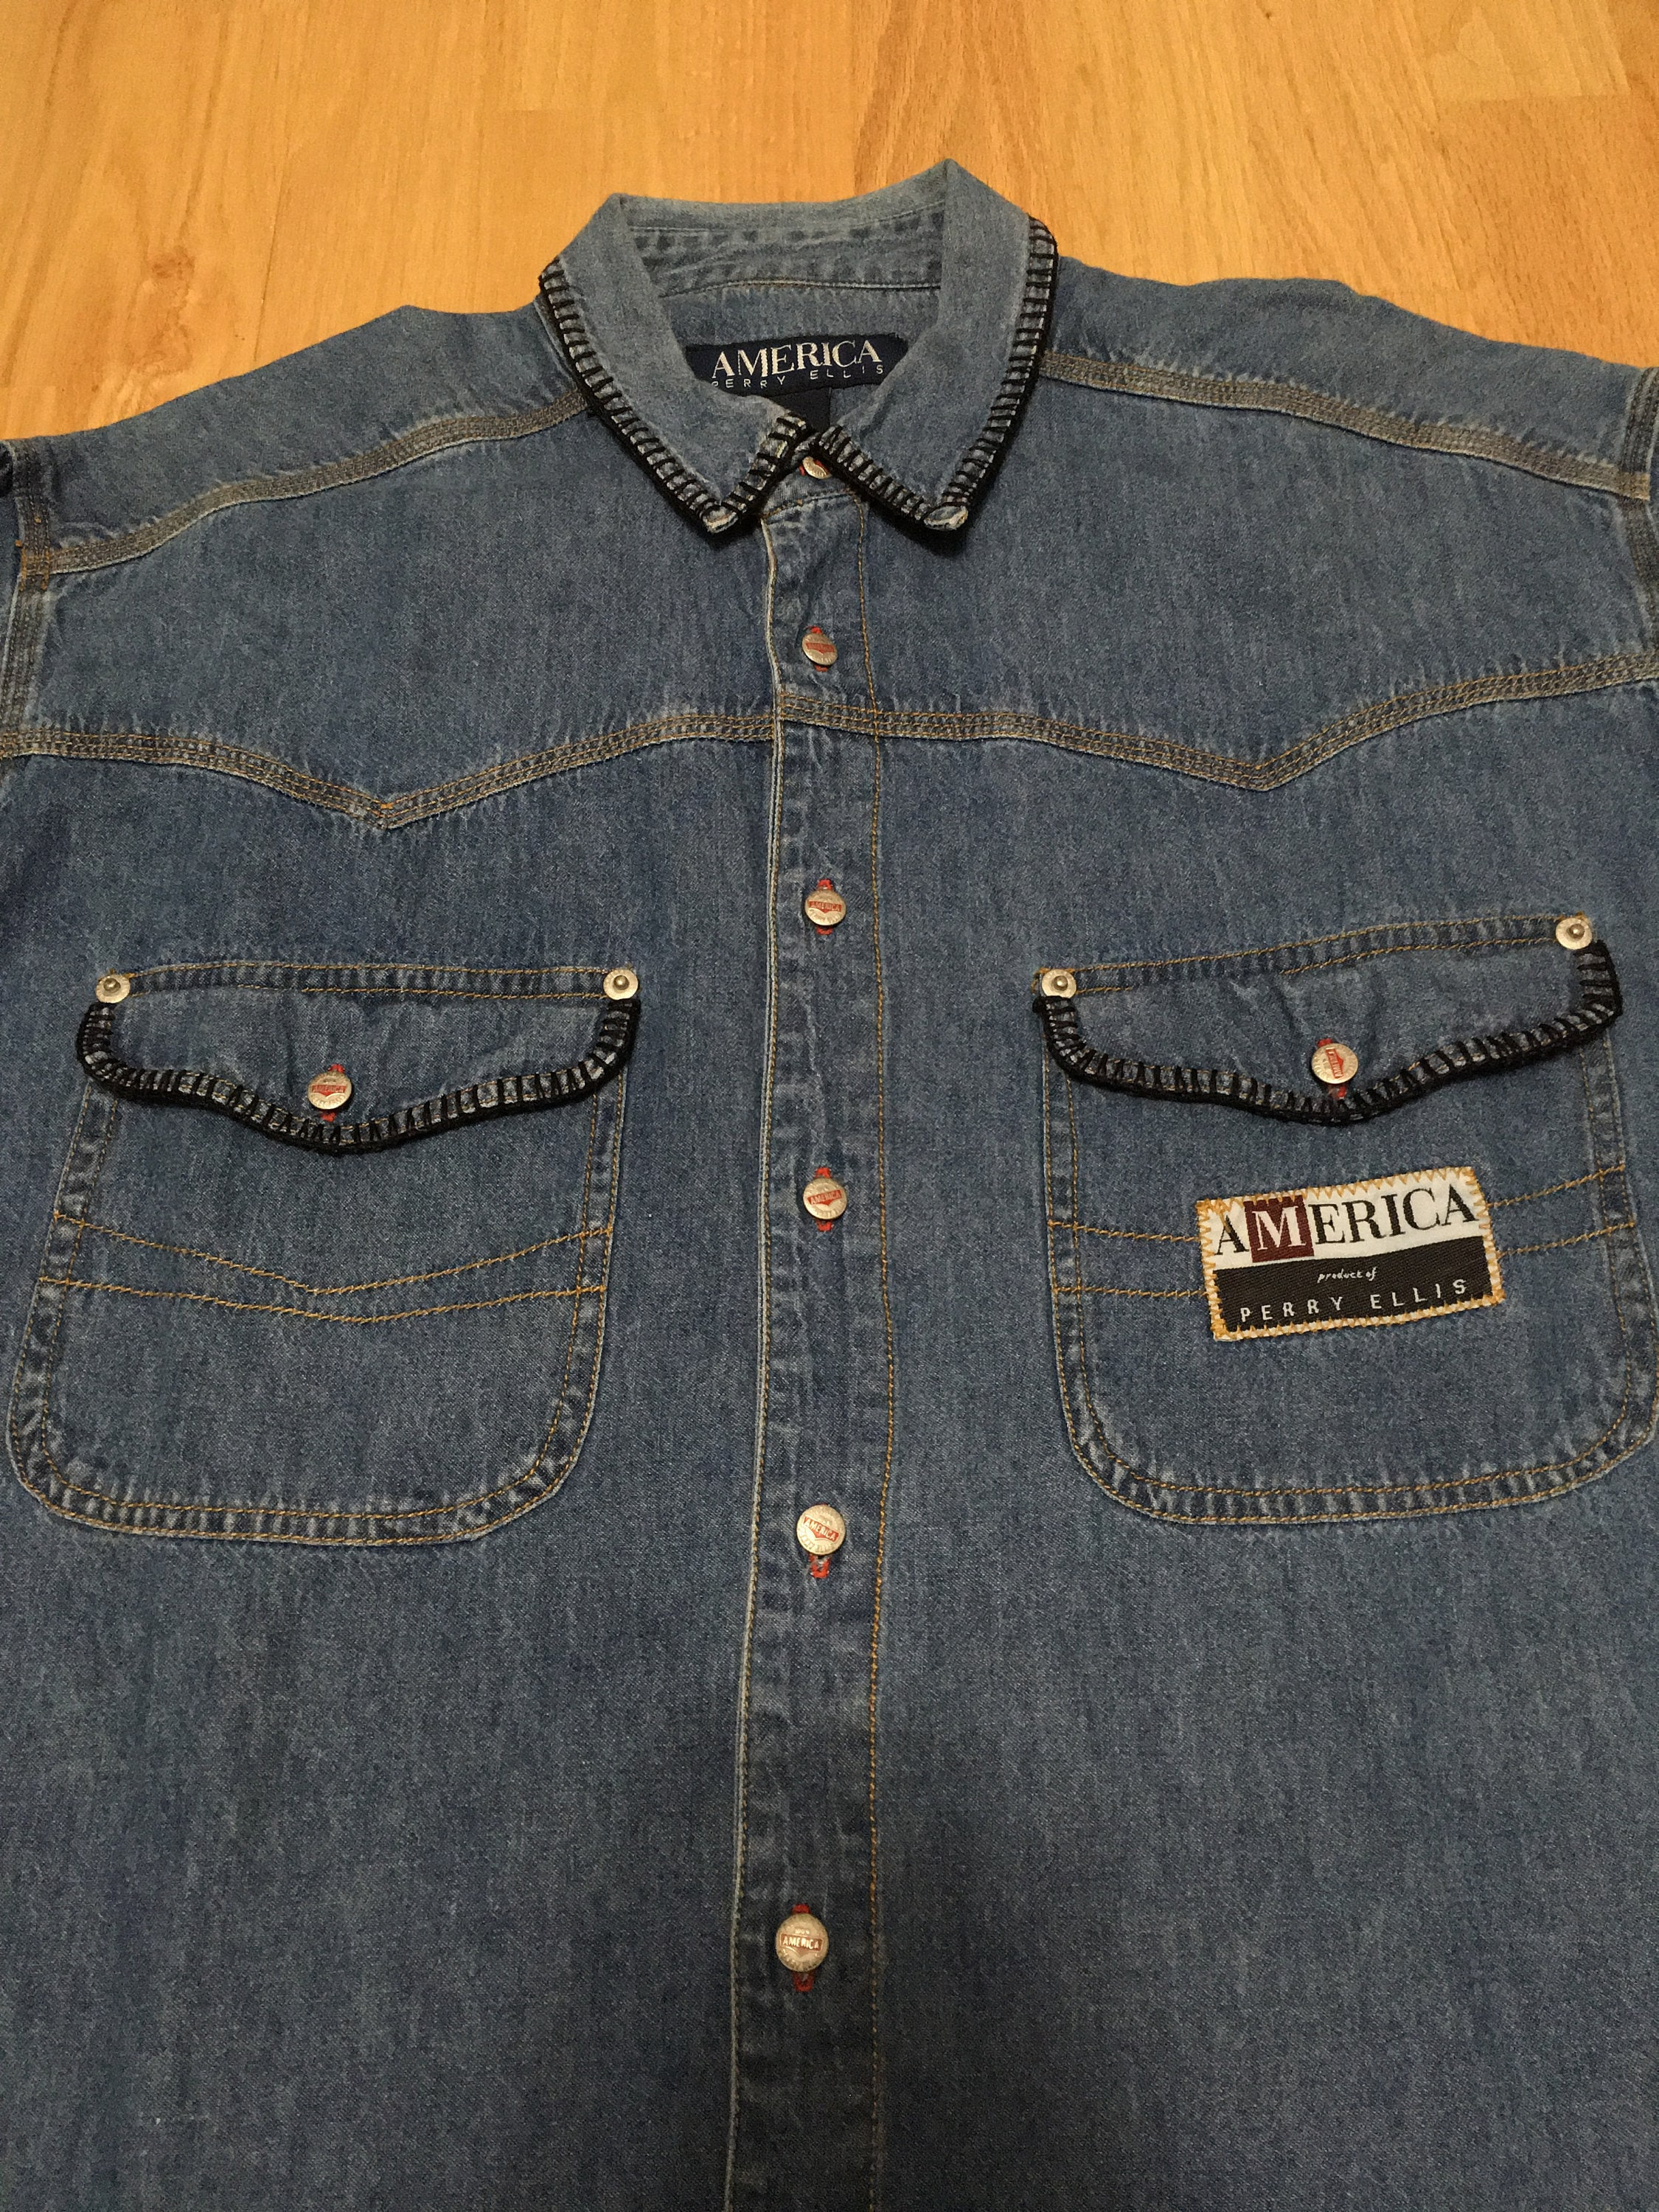 c9464aed3f Vintage America Perry Ellis Patch Spell Out Denim Long Sleeve